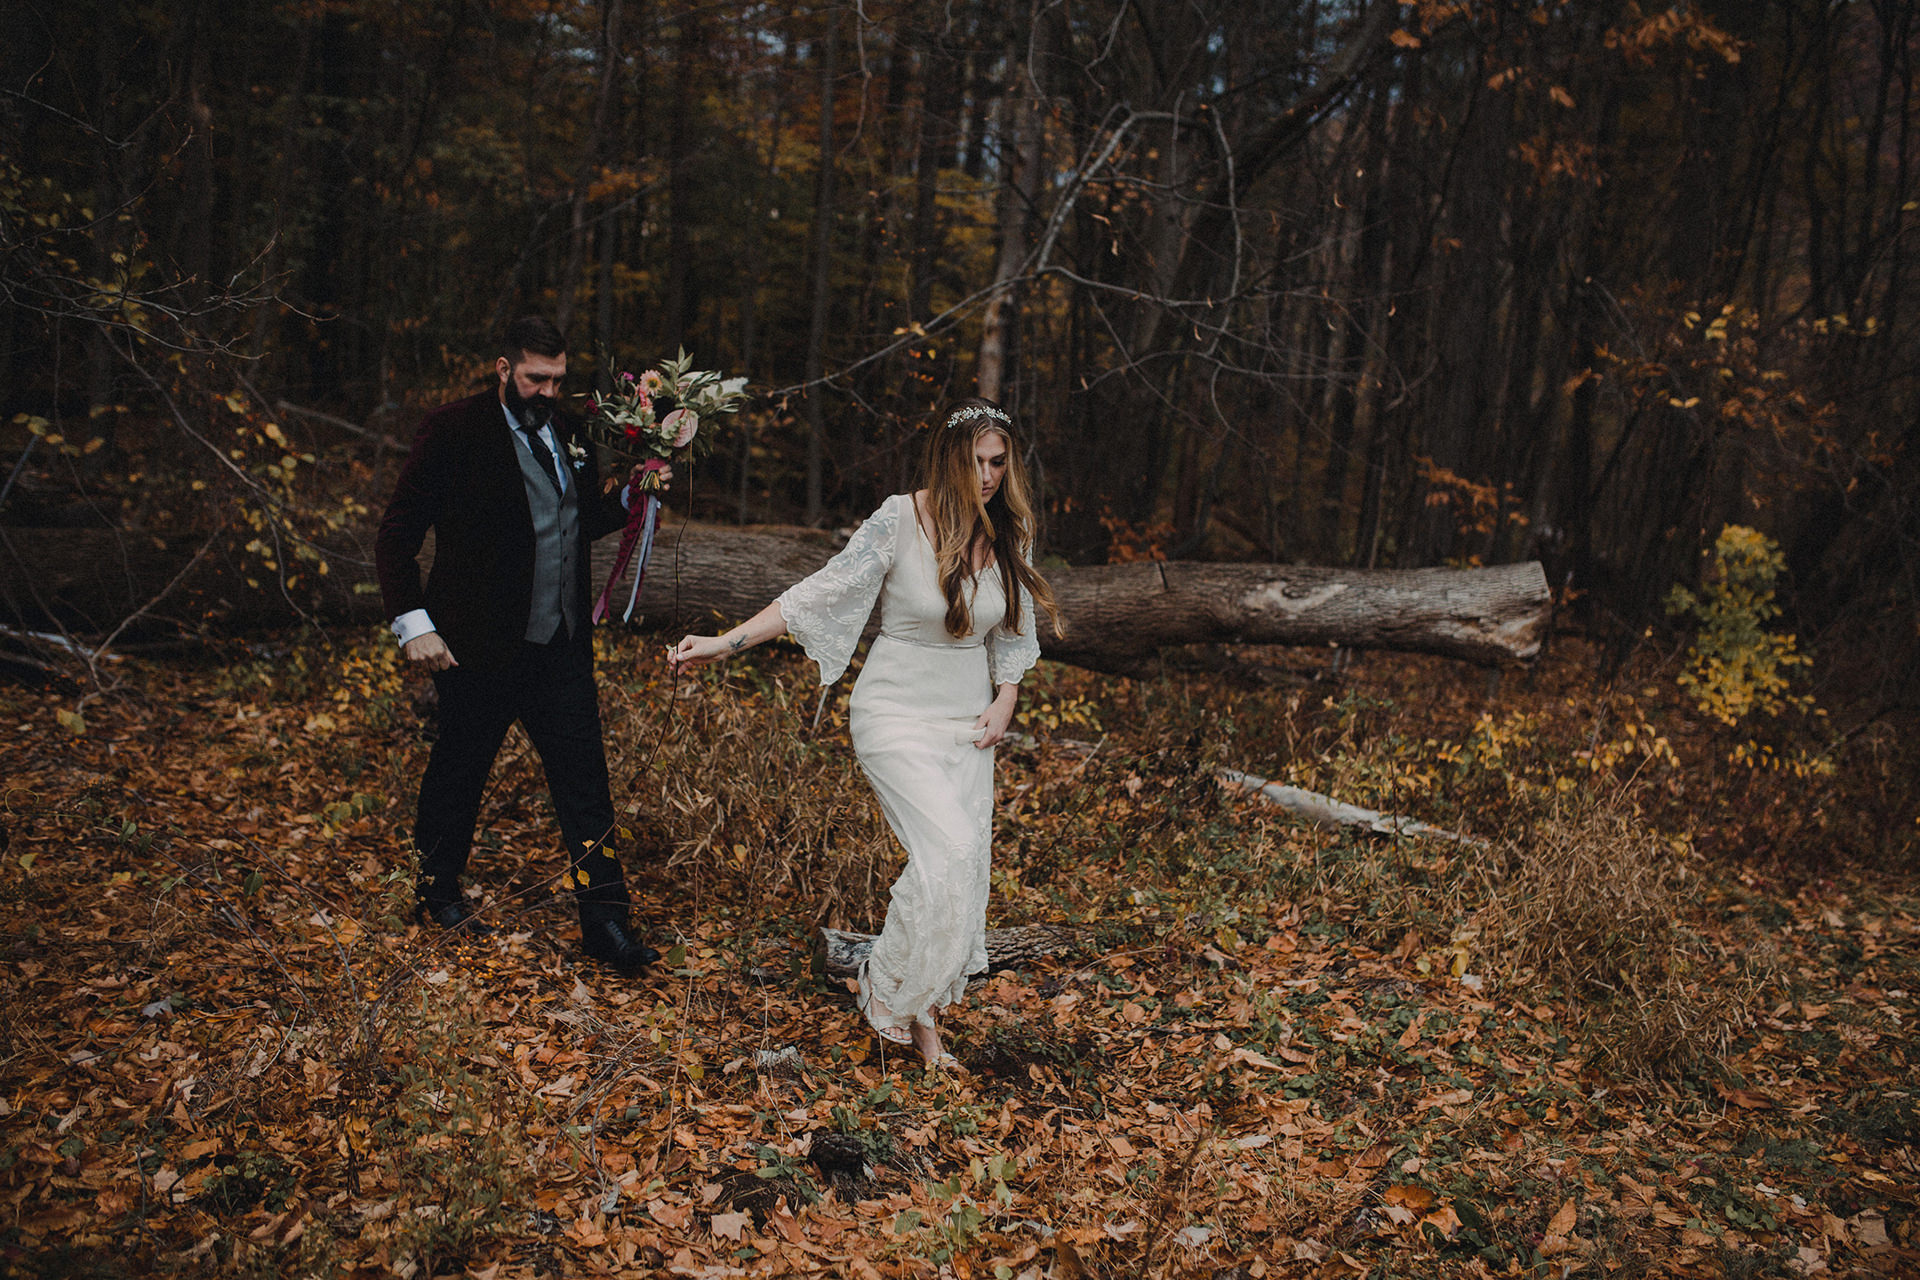 Weddind_catskills_mountain_newyjersey-234.jpg